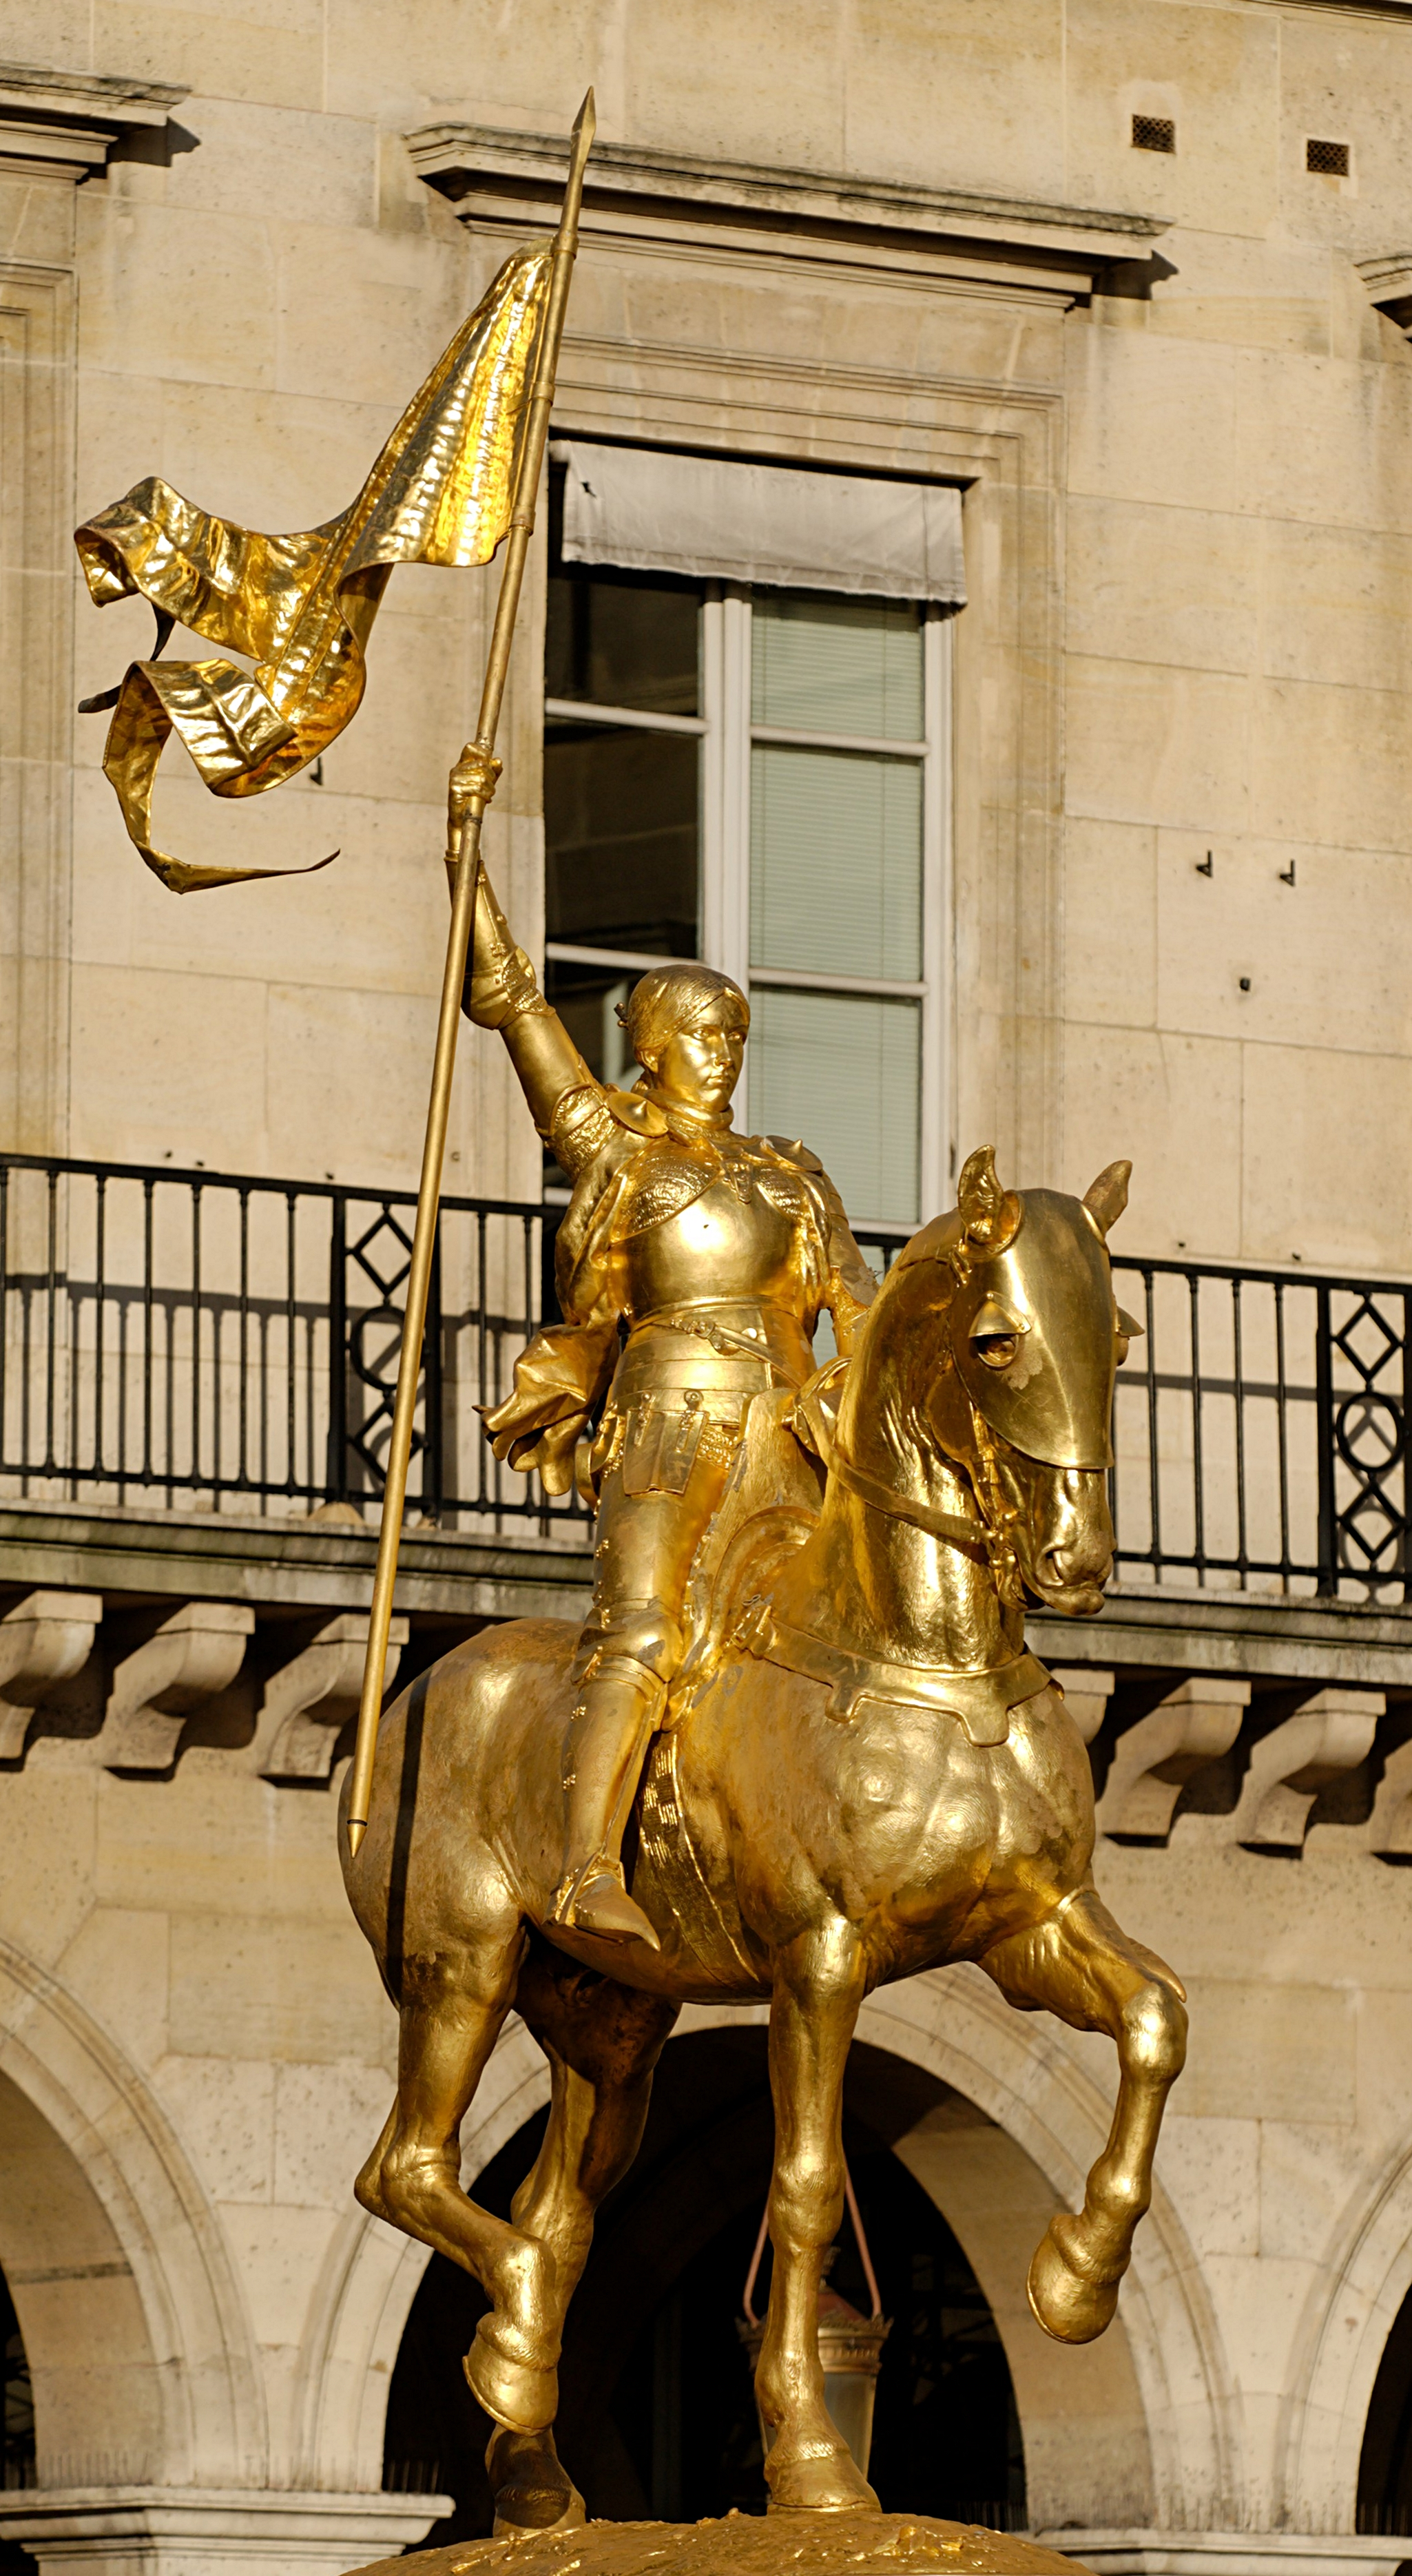 Jeanne d'Arc a gilded bronze equestrian statue exhibited at the Place des Pyramides in Paris, by Emmanuel Frémiet, 1874. Photo taken by <a href=